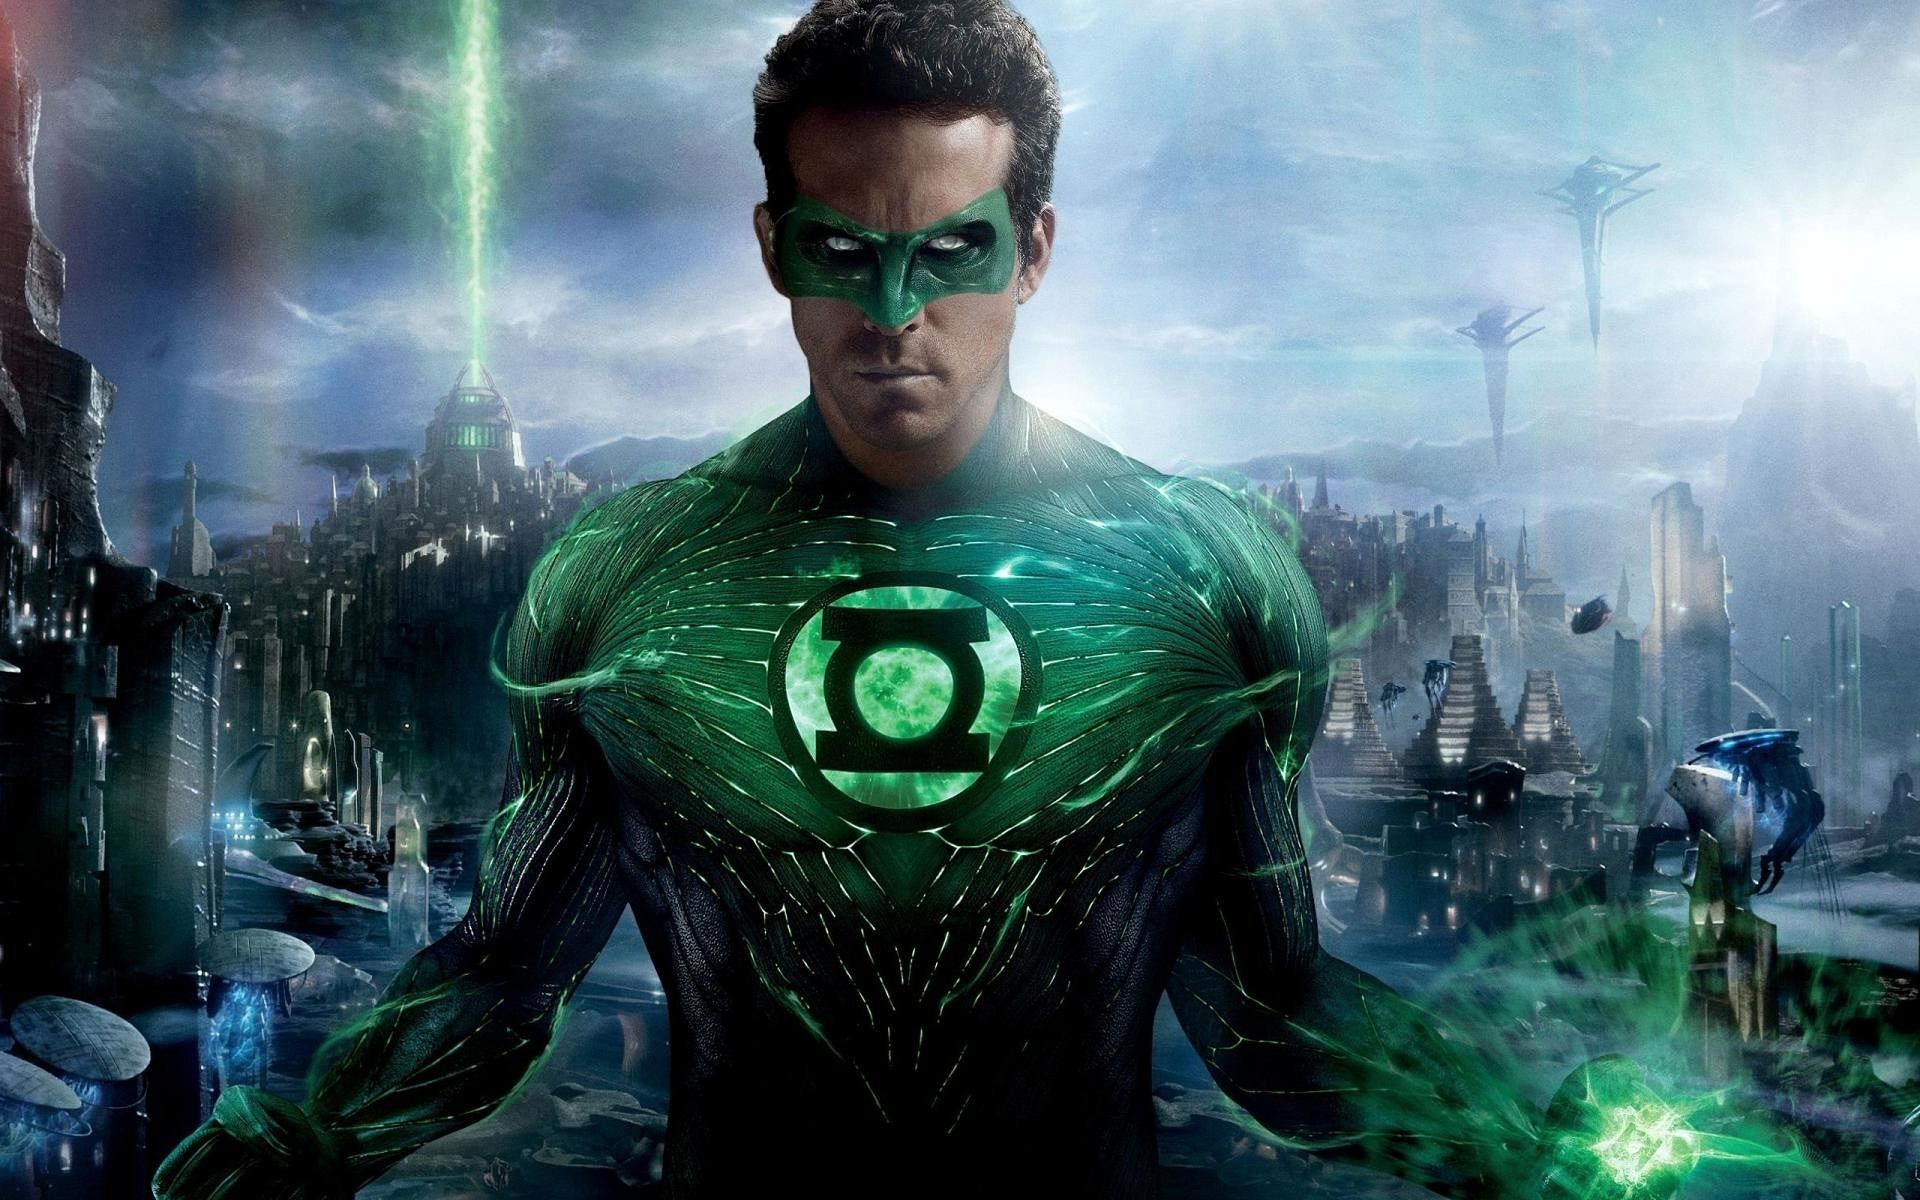 Sterling K. Brown is campaigning to play the new Green Lantern, and we support this 100%